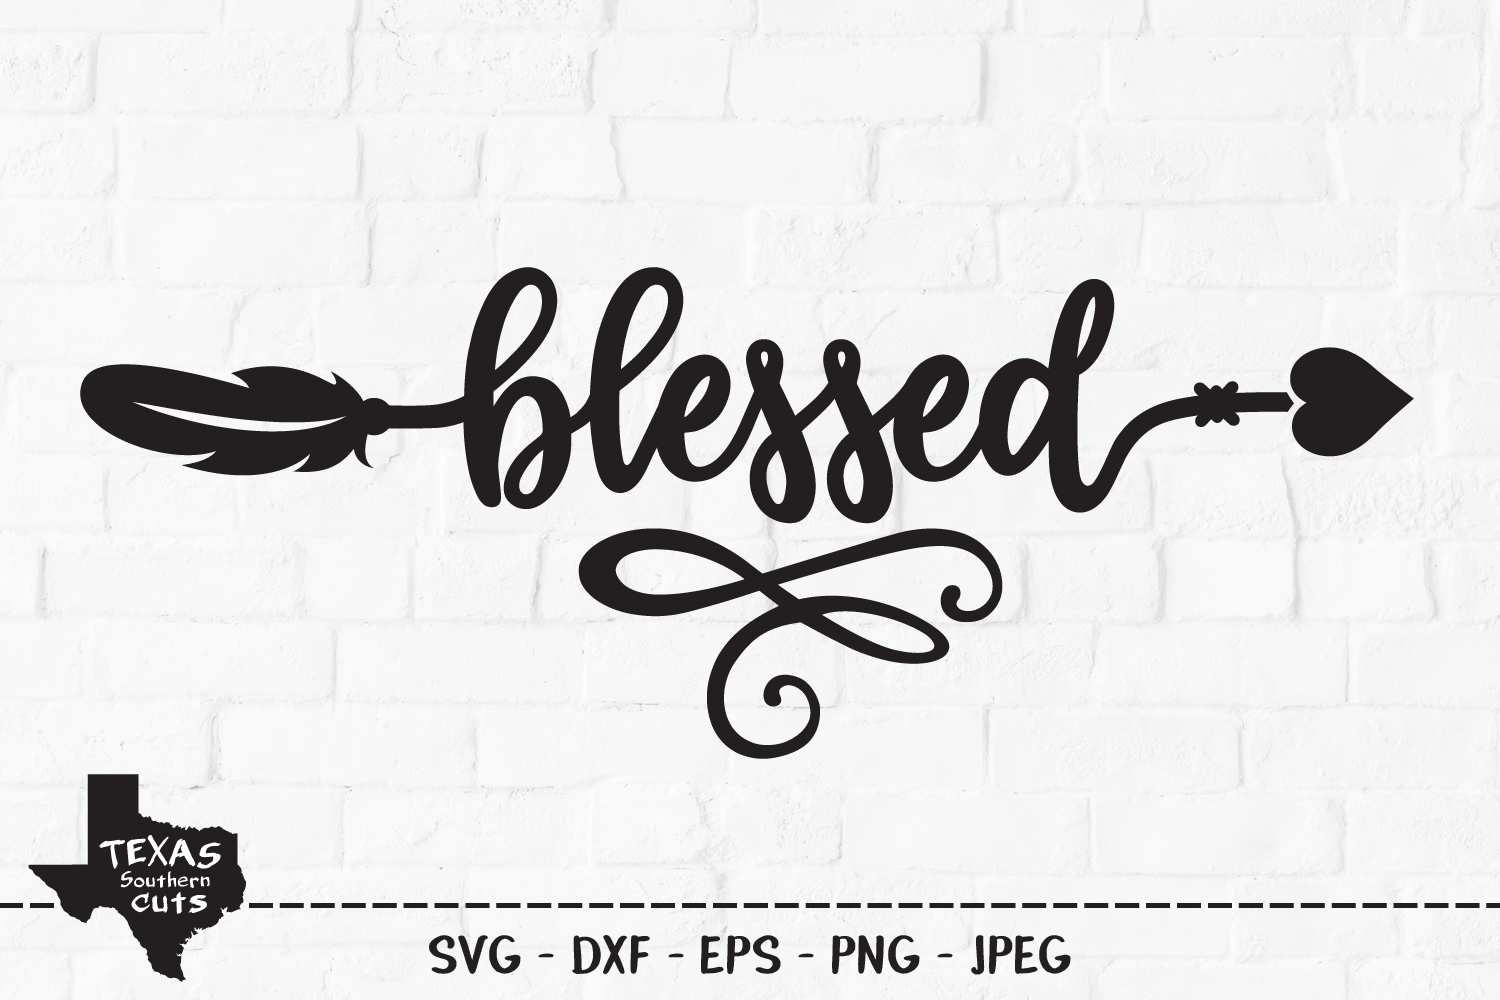 Download Free Blessed Tribal Arrow Design Graphic By Texassoutherncuts for Cricut Explore, Silhouette and other cutting machines.